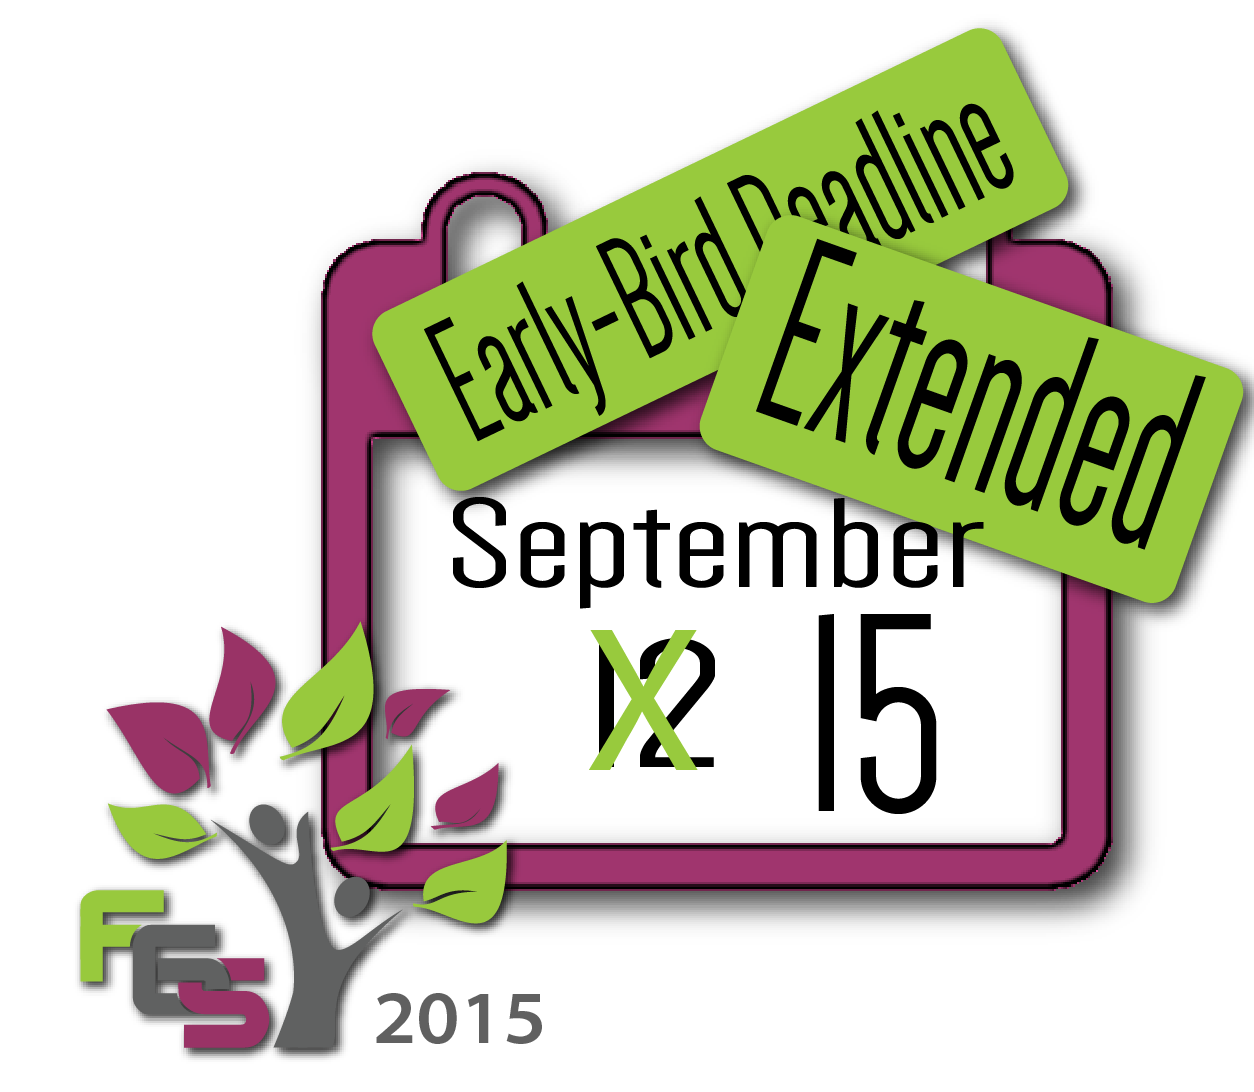 FGS 2015 Early-Bird Deadline Extended